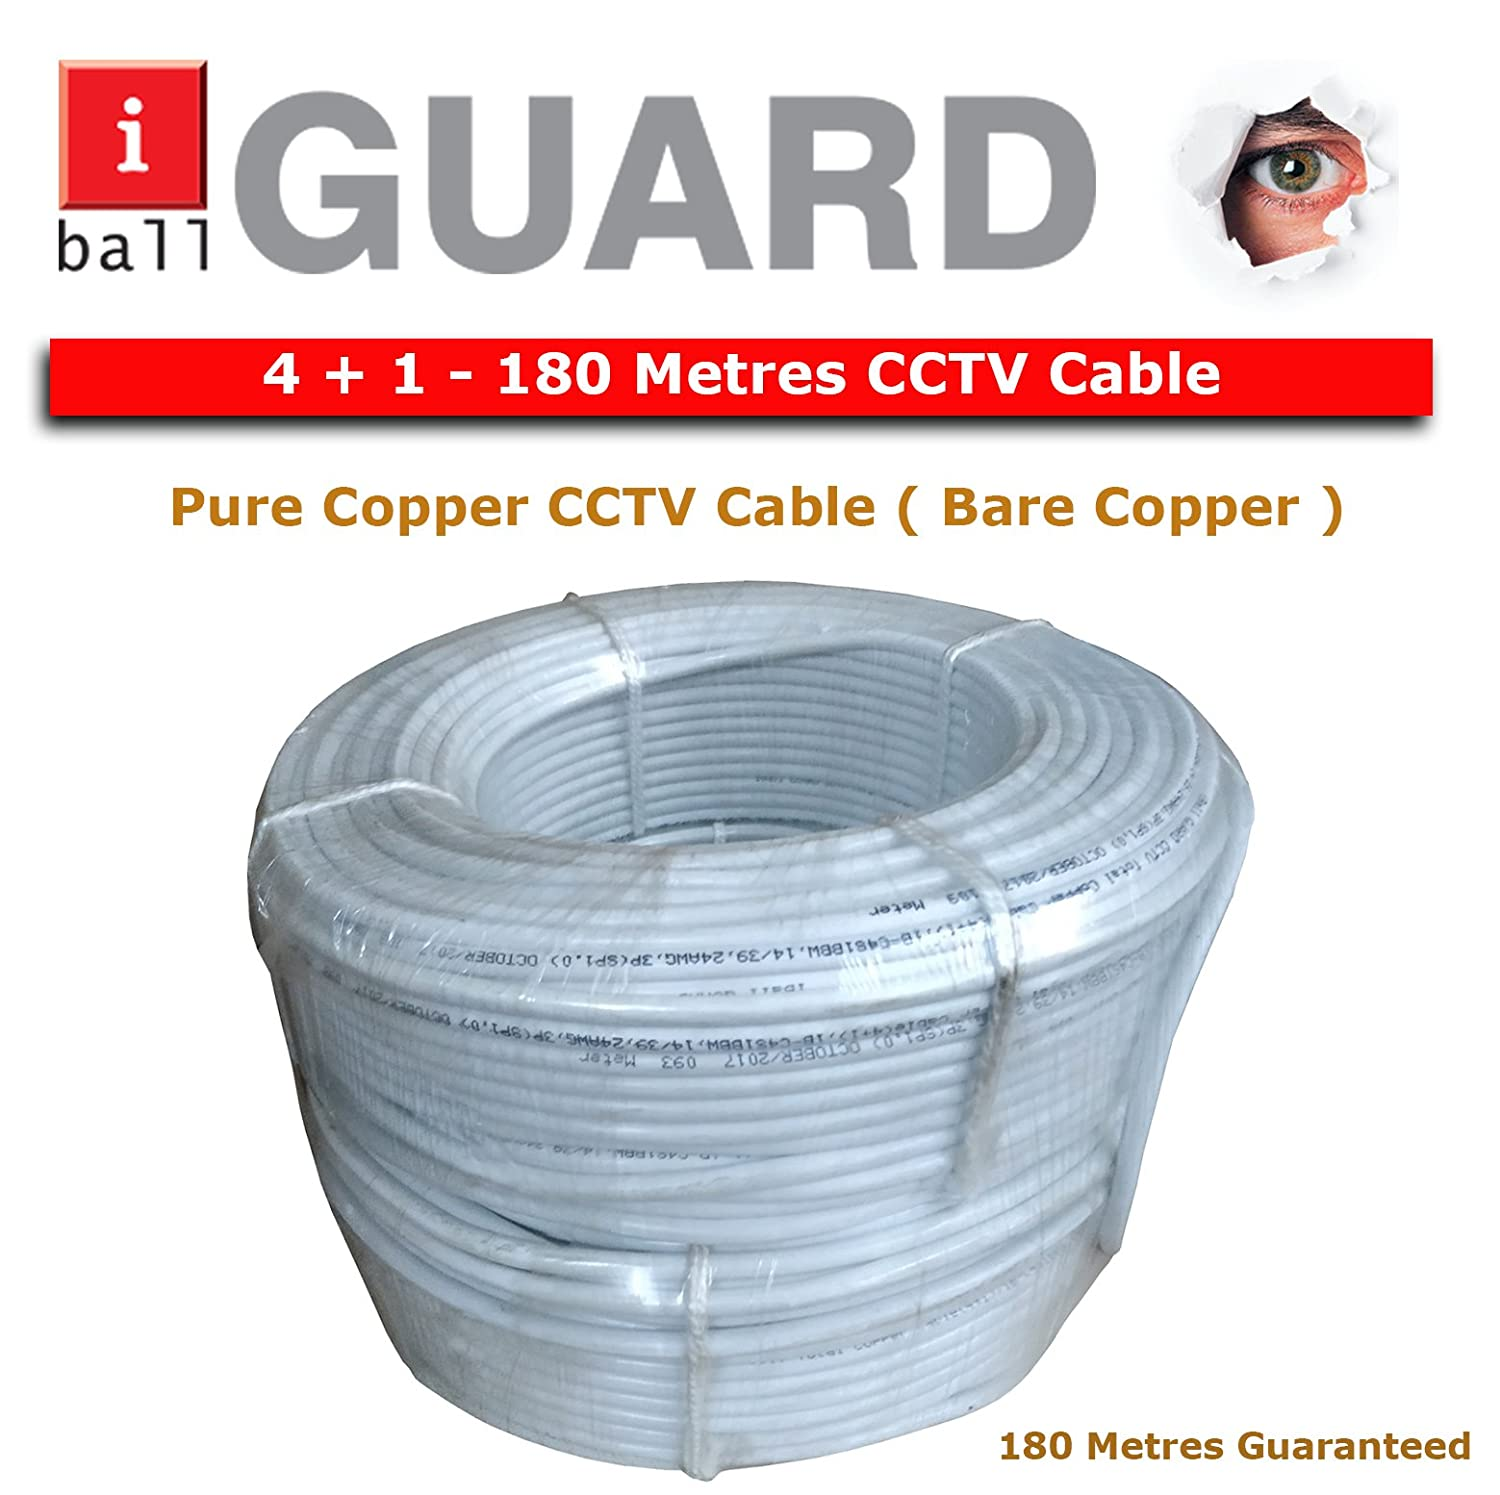 Buy Iball 4 1 Copper 180m Cctv Cable Video Power Audio Wiring For Home Conductor Online At Low Price In India Camera Reviews Ratings